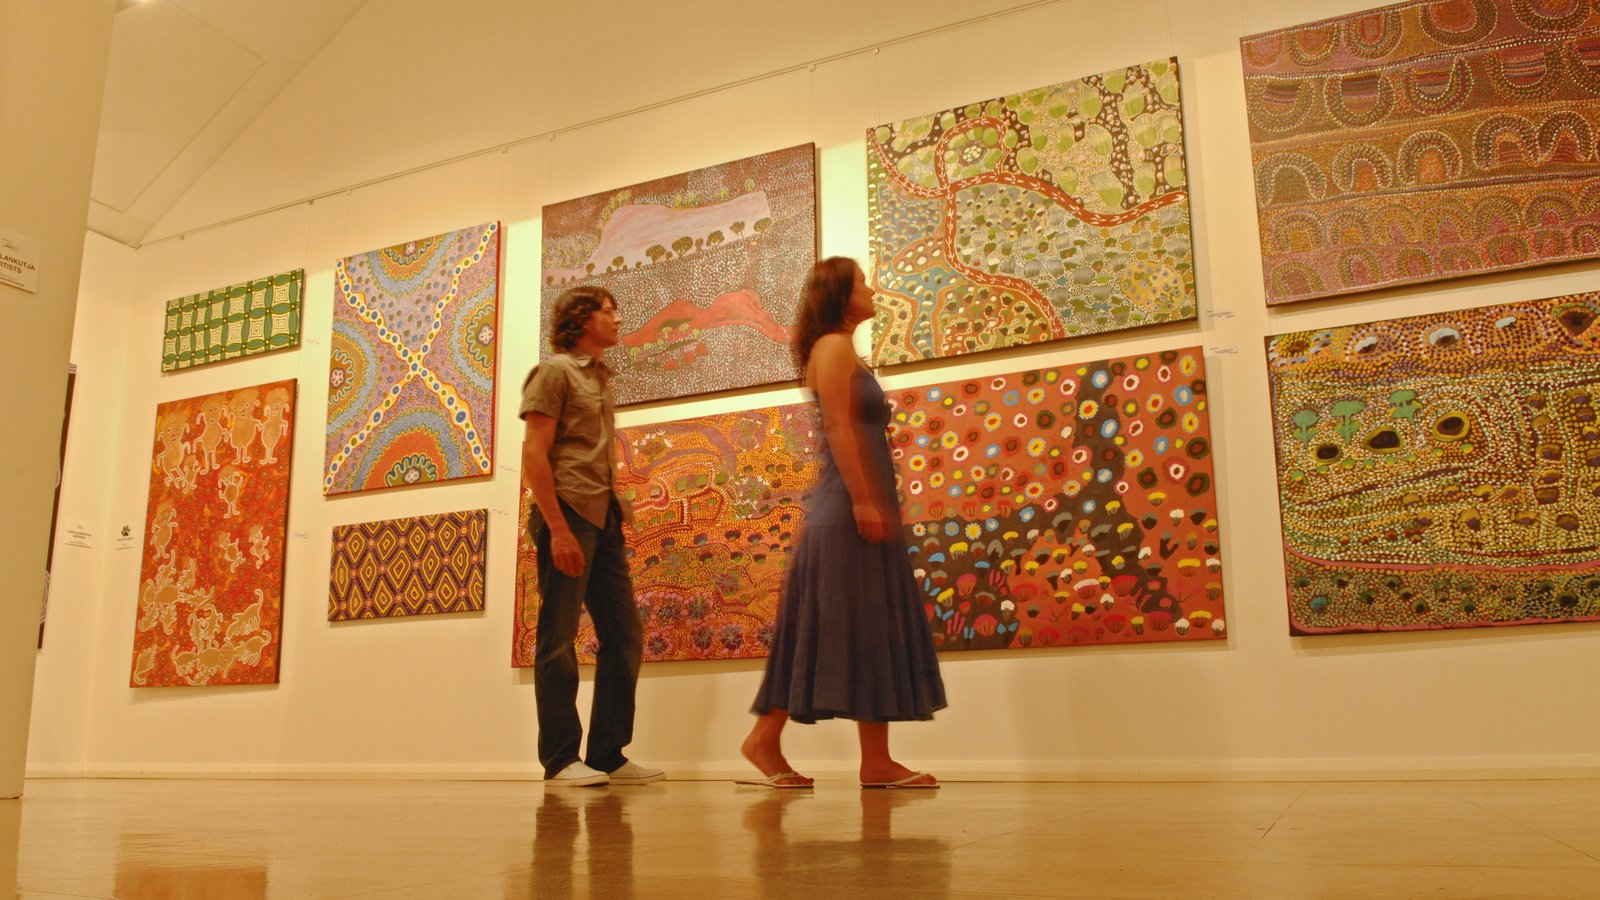 Alice Springs featuring interior views and art as well as a couple